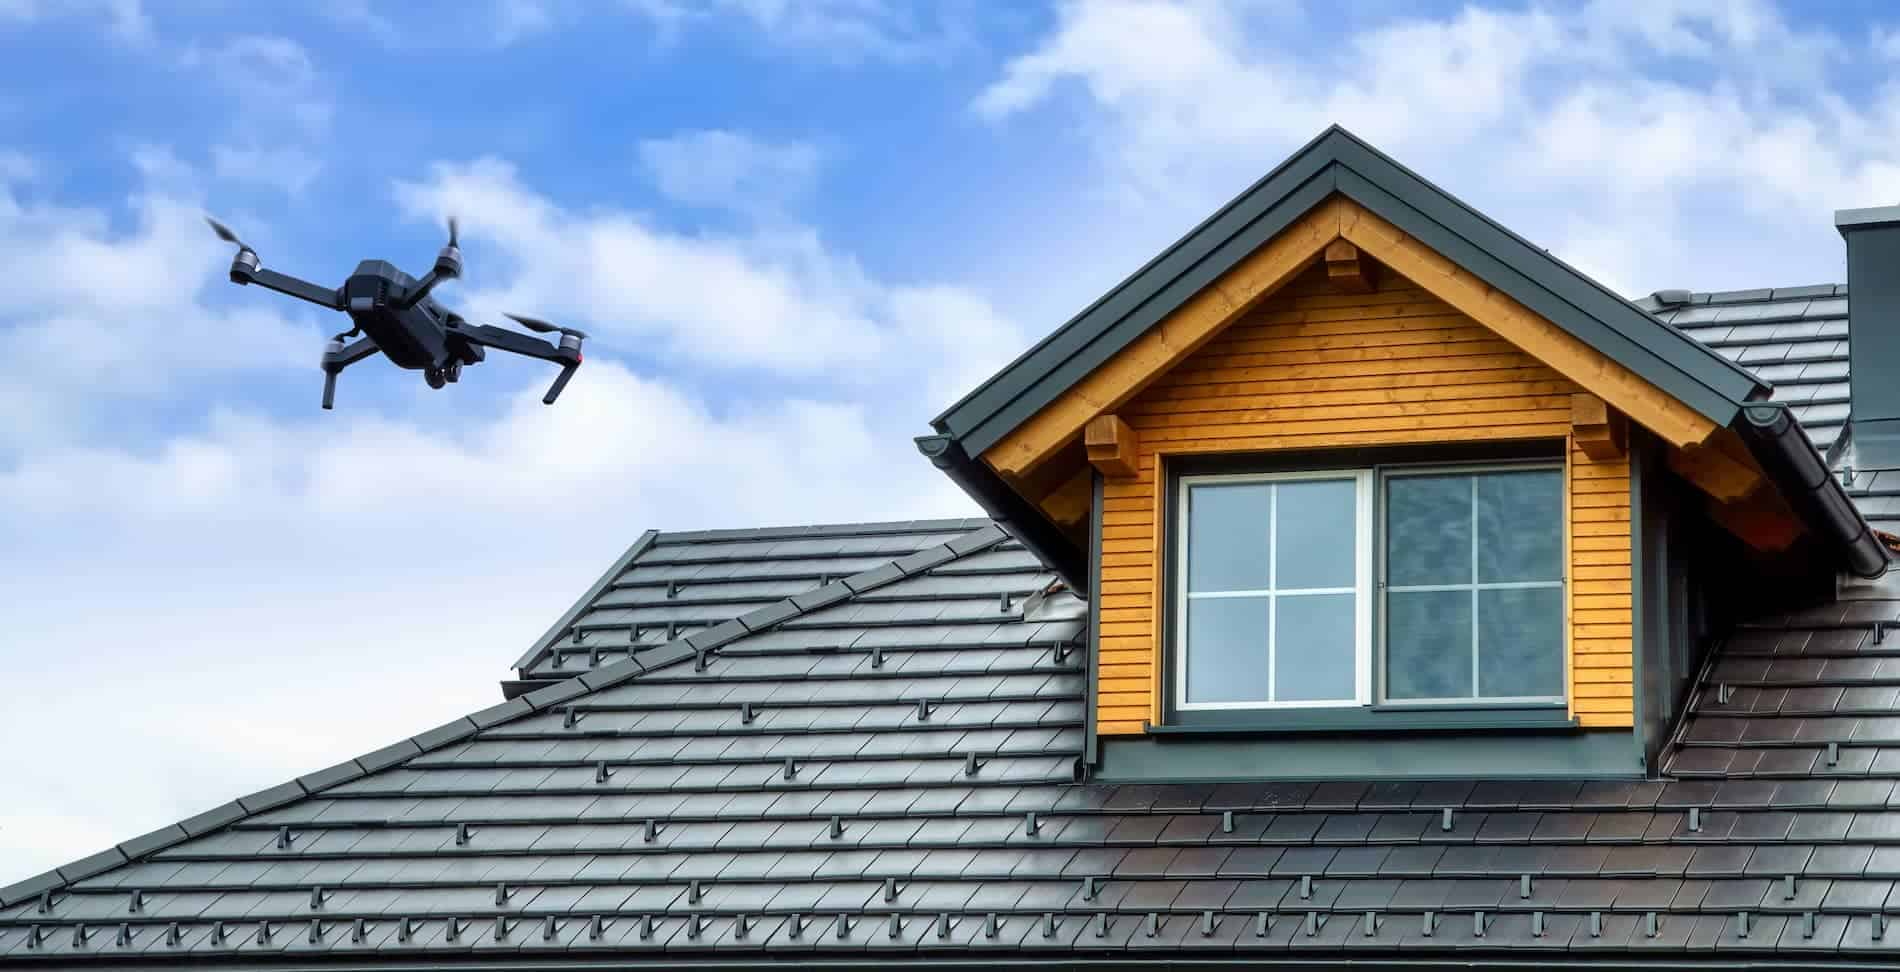 Residential Roof Inspection Service with Drone